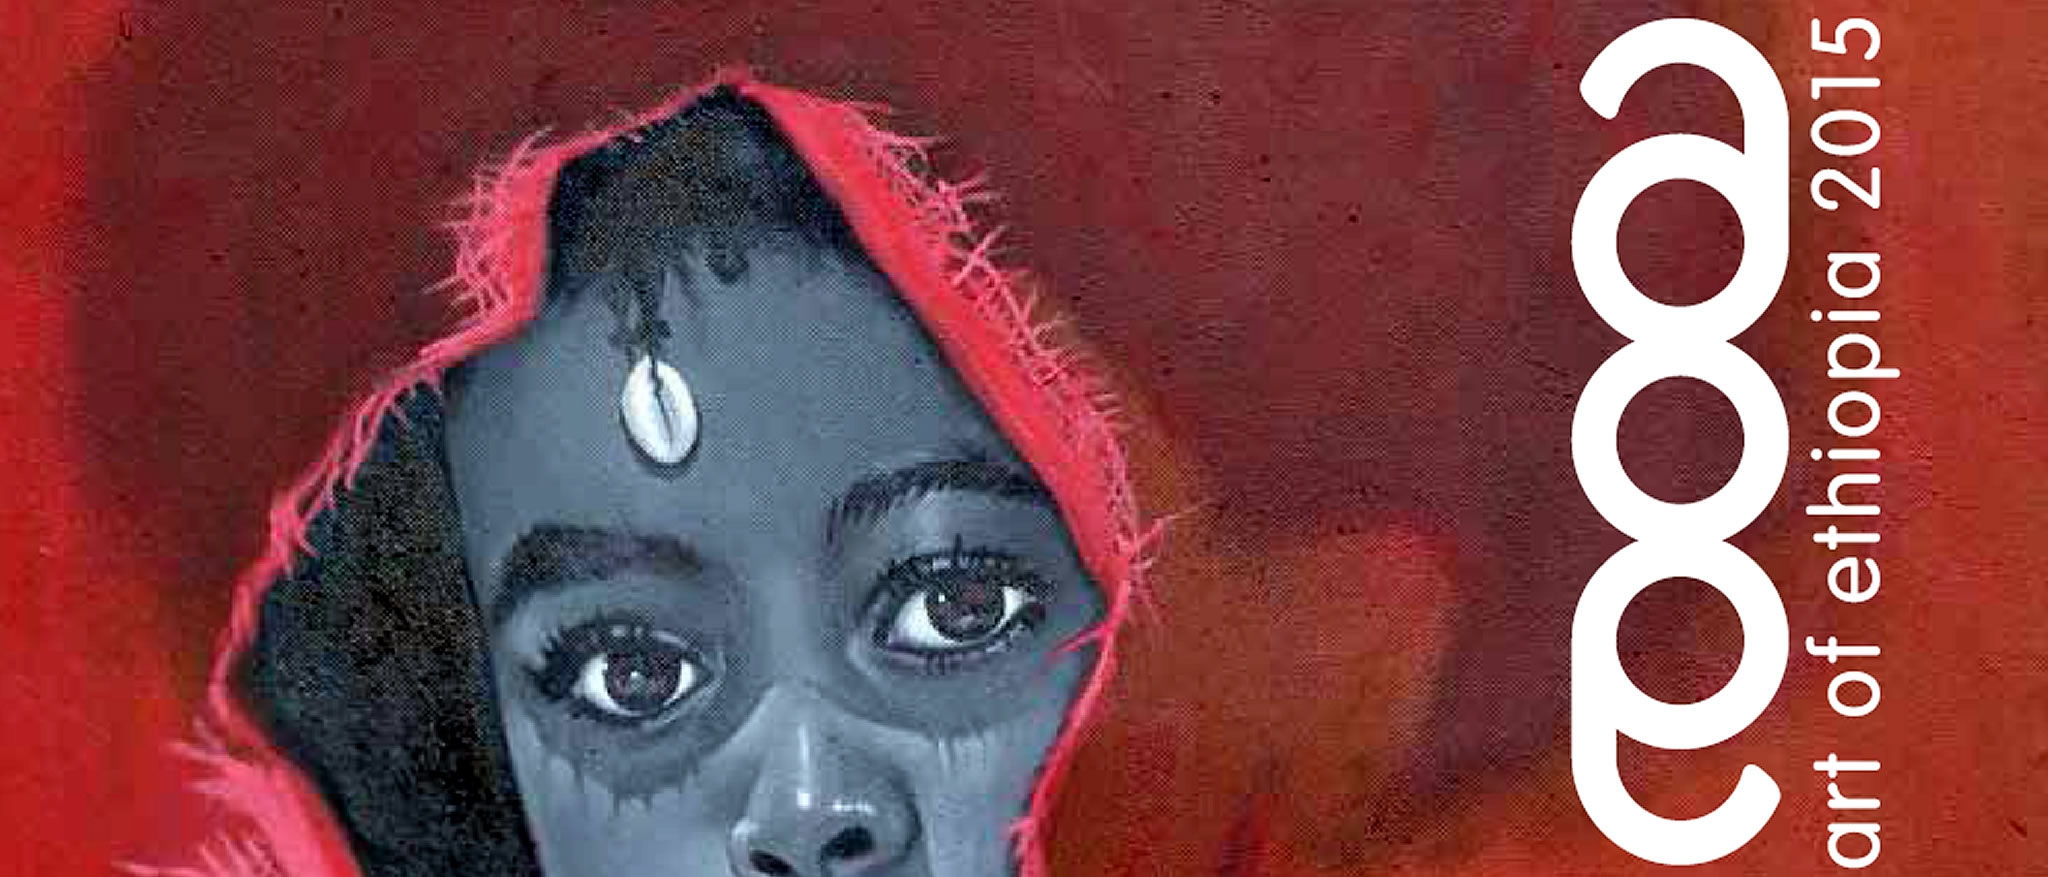 Ethiopian Art Show Catalogue cover with a artist's portrayal of a young girl